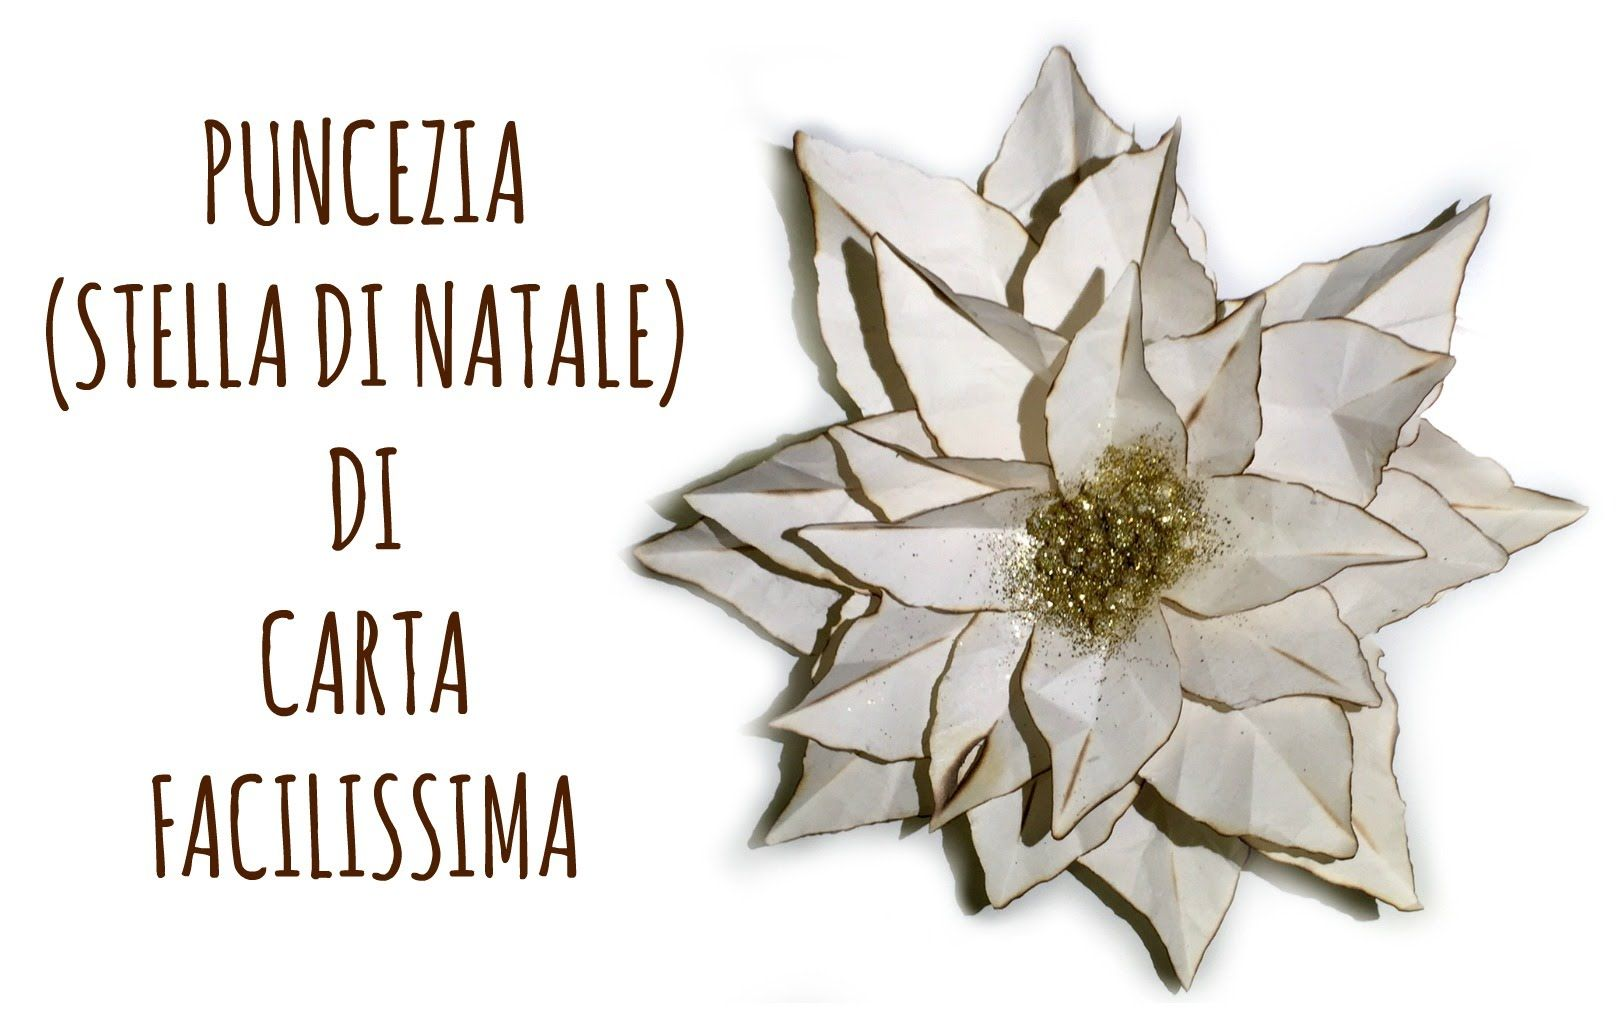 Come Fare La Stella Di Natale Di Carta.Come Fare Una Poinsettia O Stella Di Natale Di Carta How To Make A